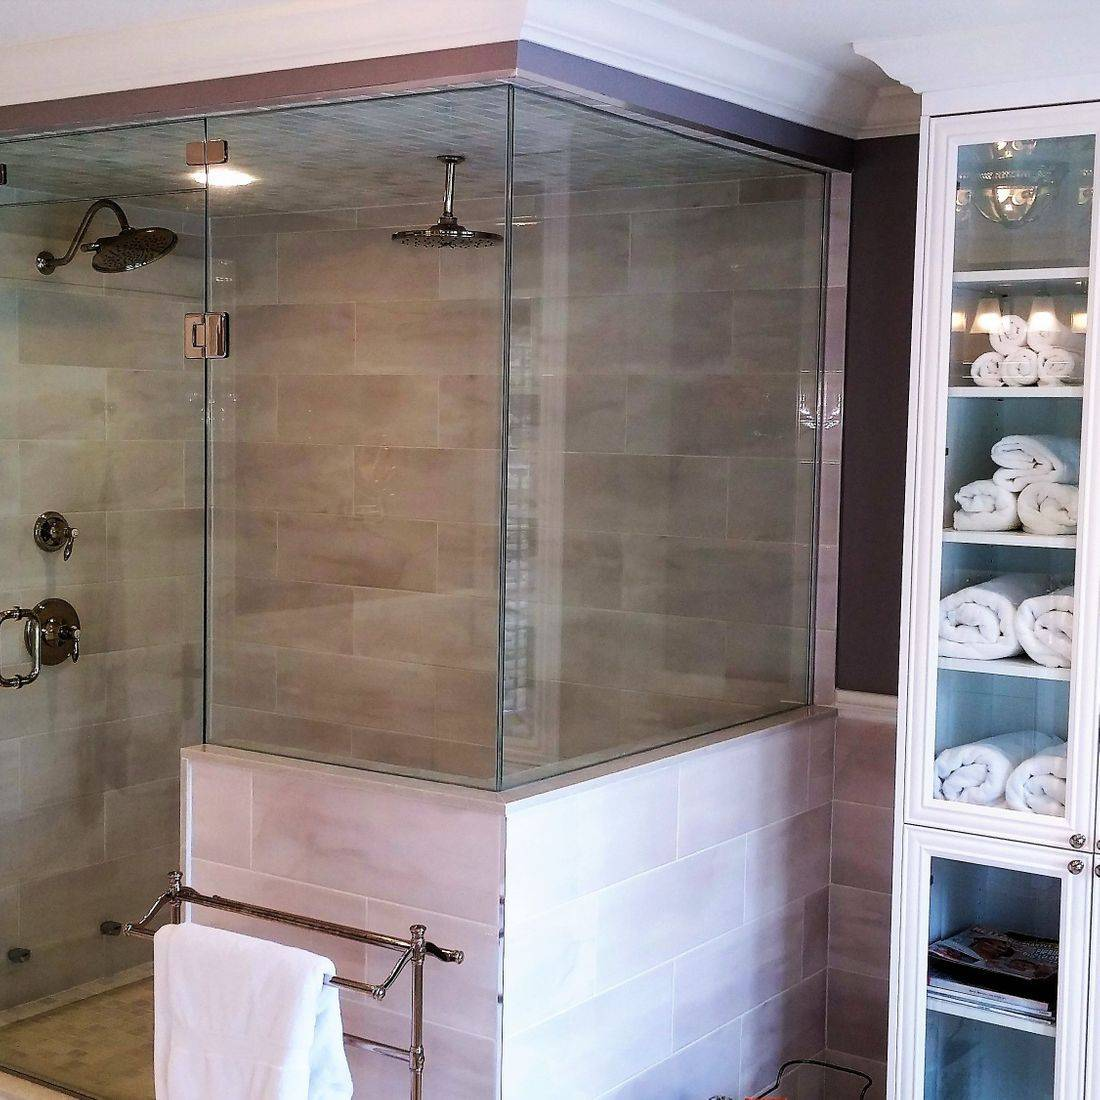 Sibra Kitchens Markham Toronto cabinets bathroom shower